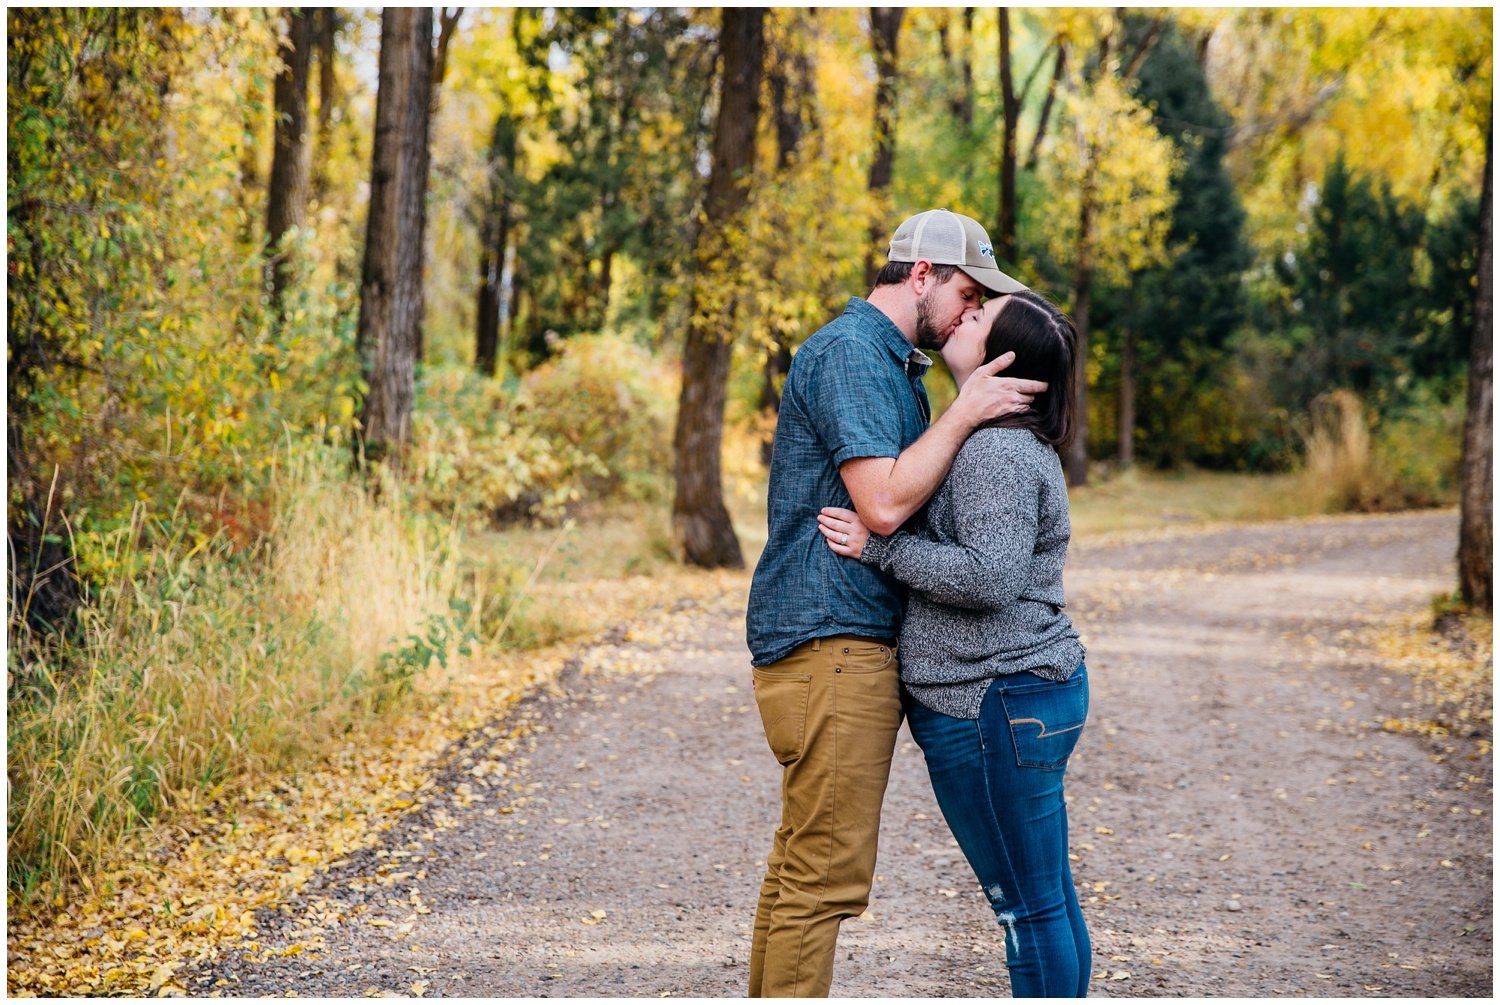 idaho-adventure-wedding-photographer-idaho-falls-rigby-rexburg-engagements_1612.jpg